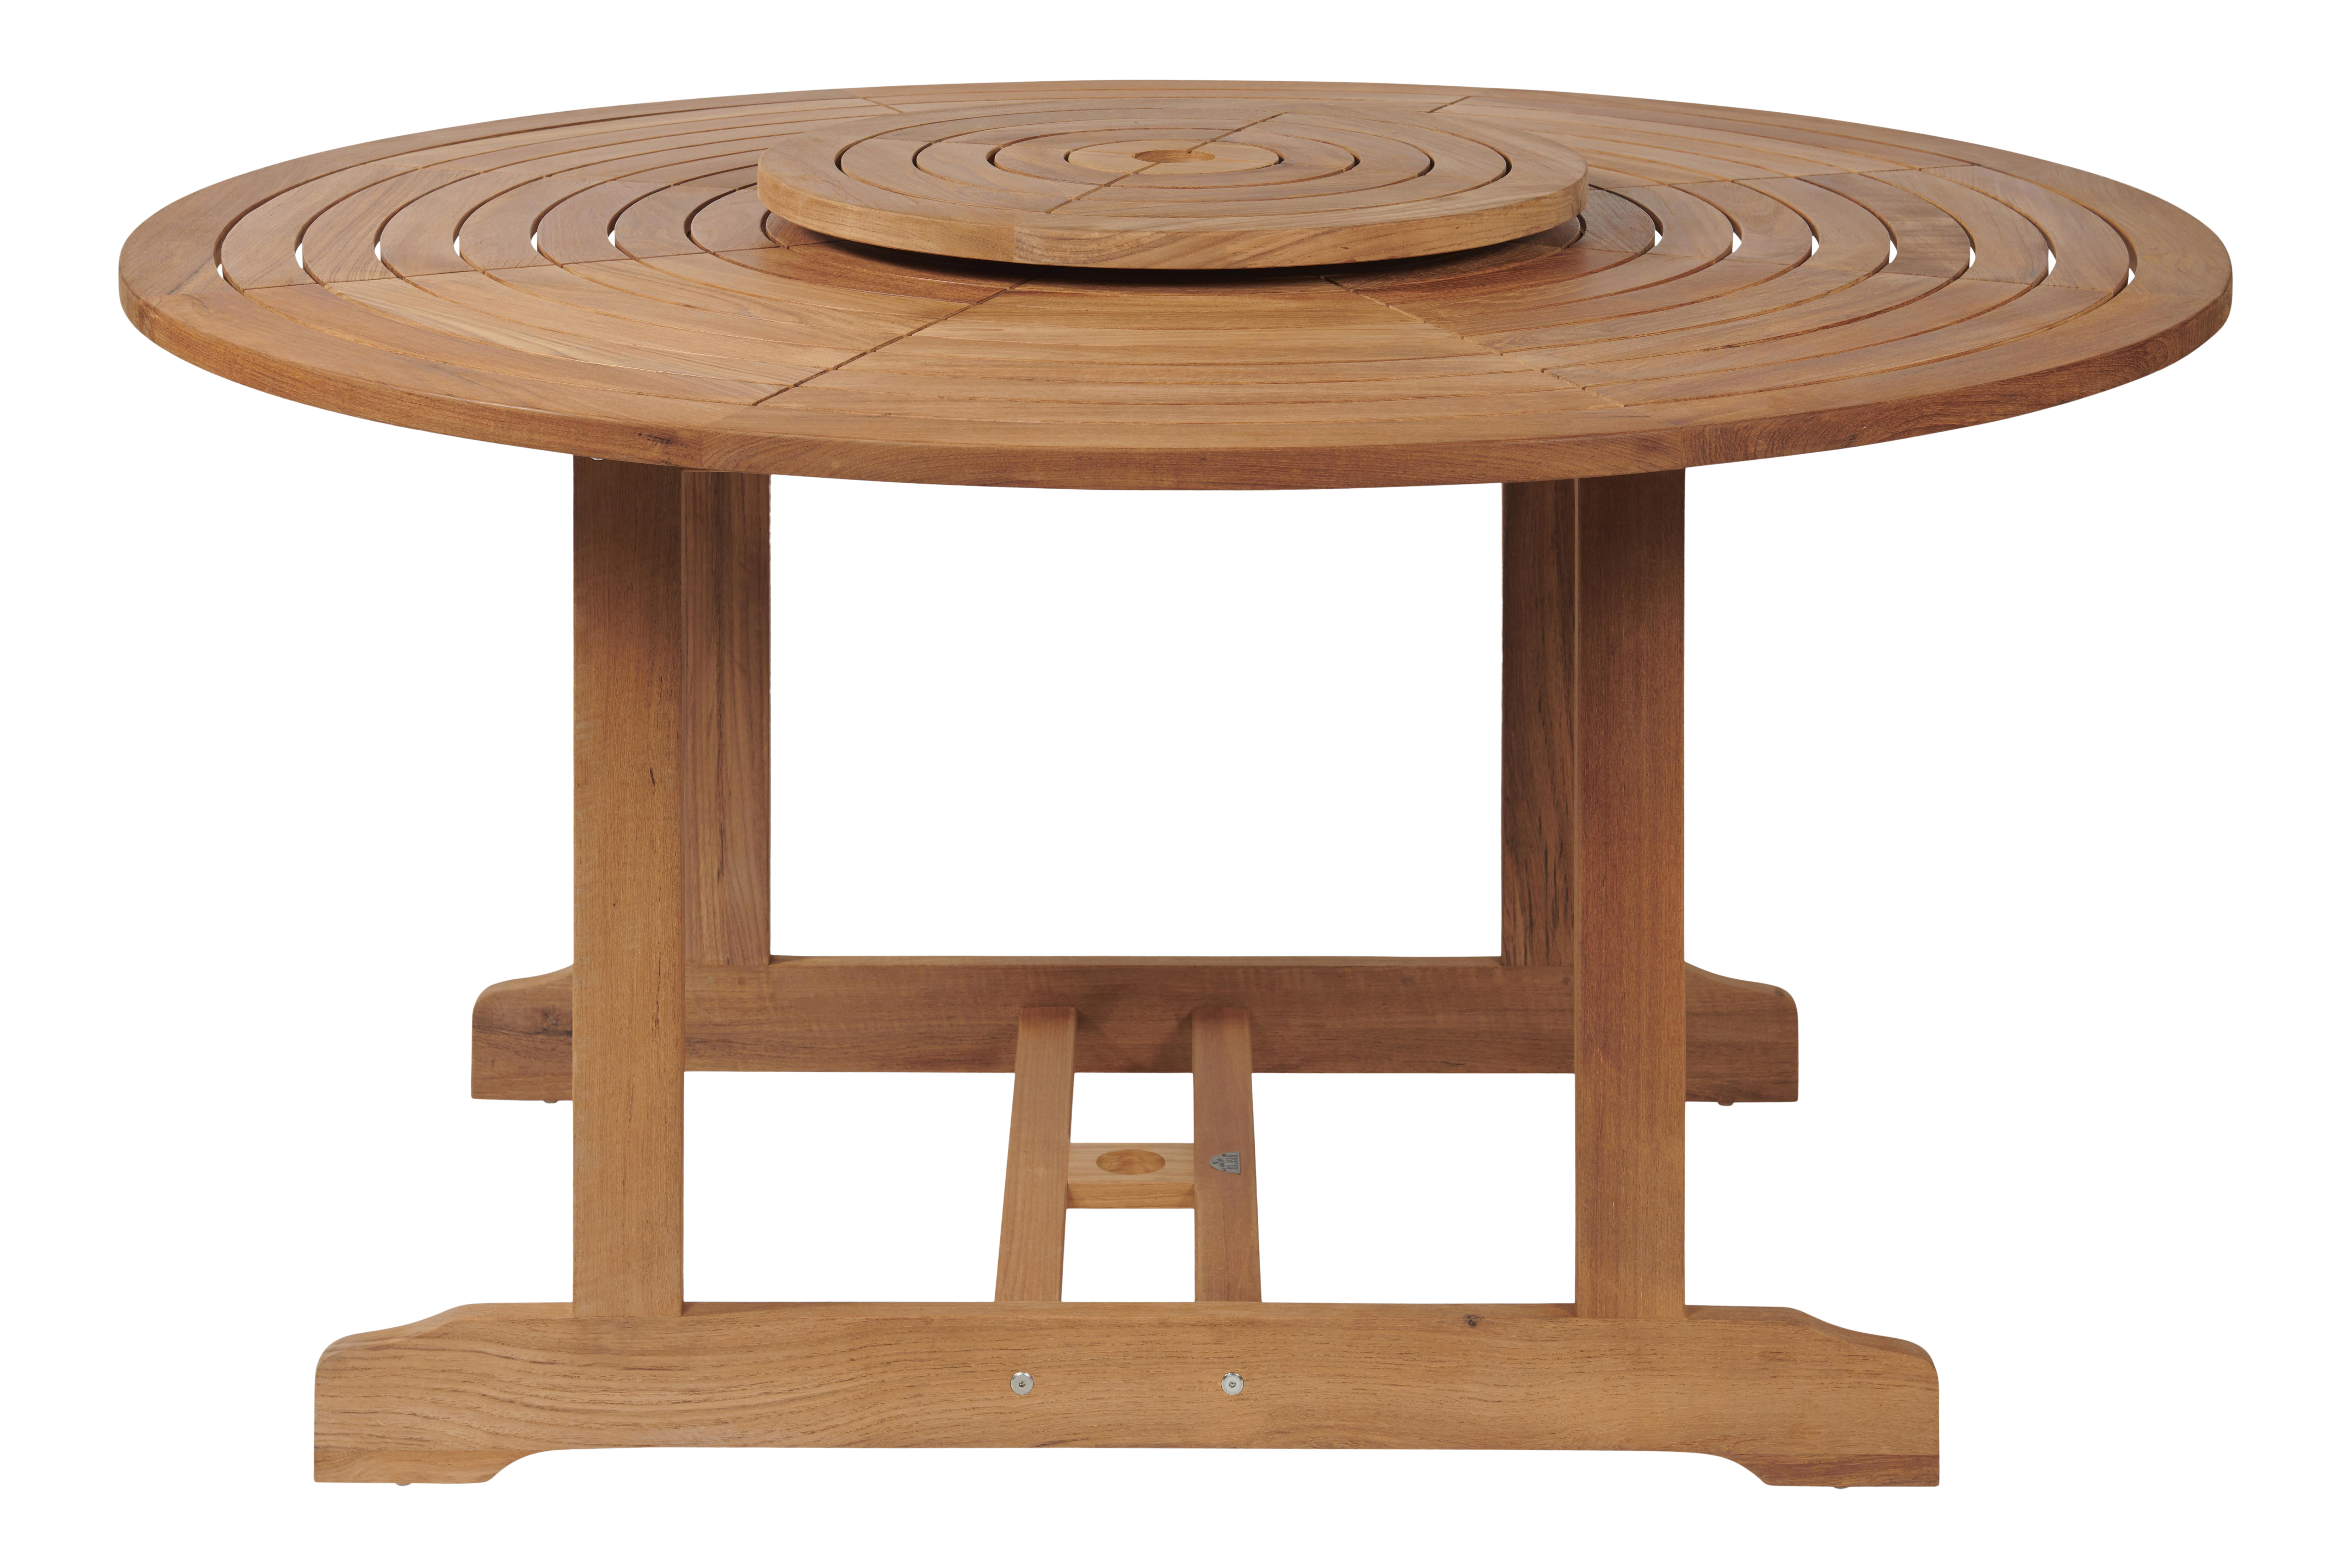 Royal Round Teak Outdoor Dining Table With Lazy Susan Chairish